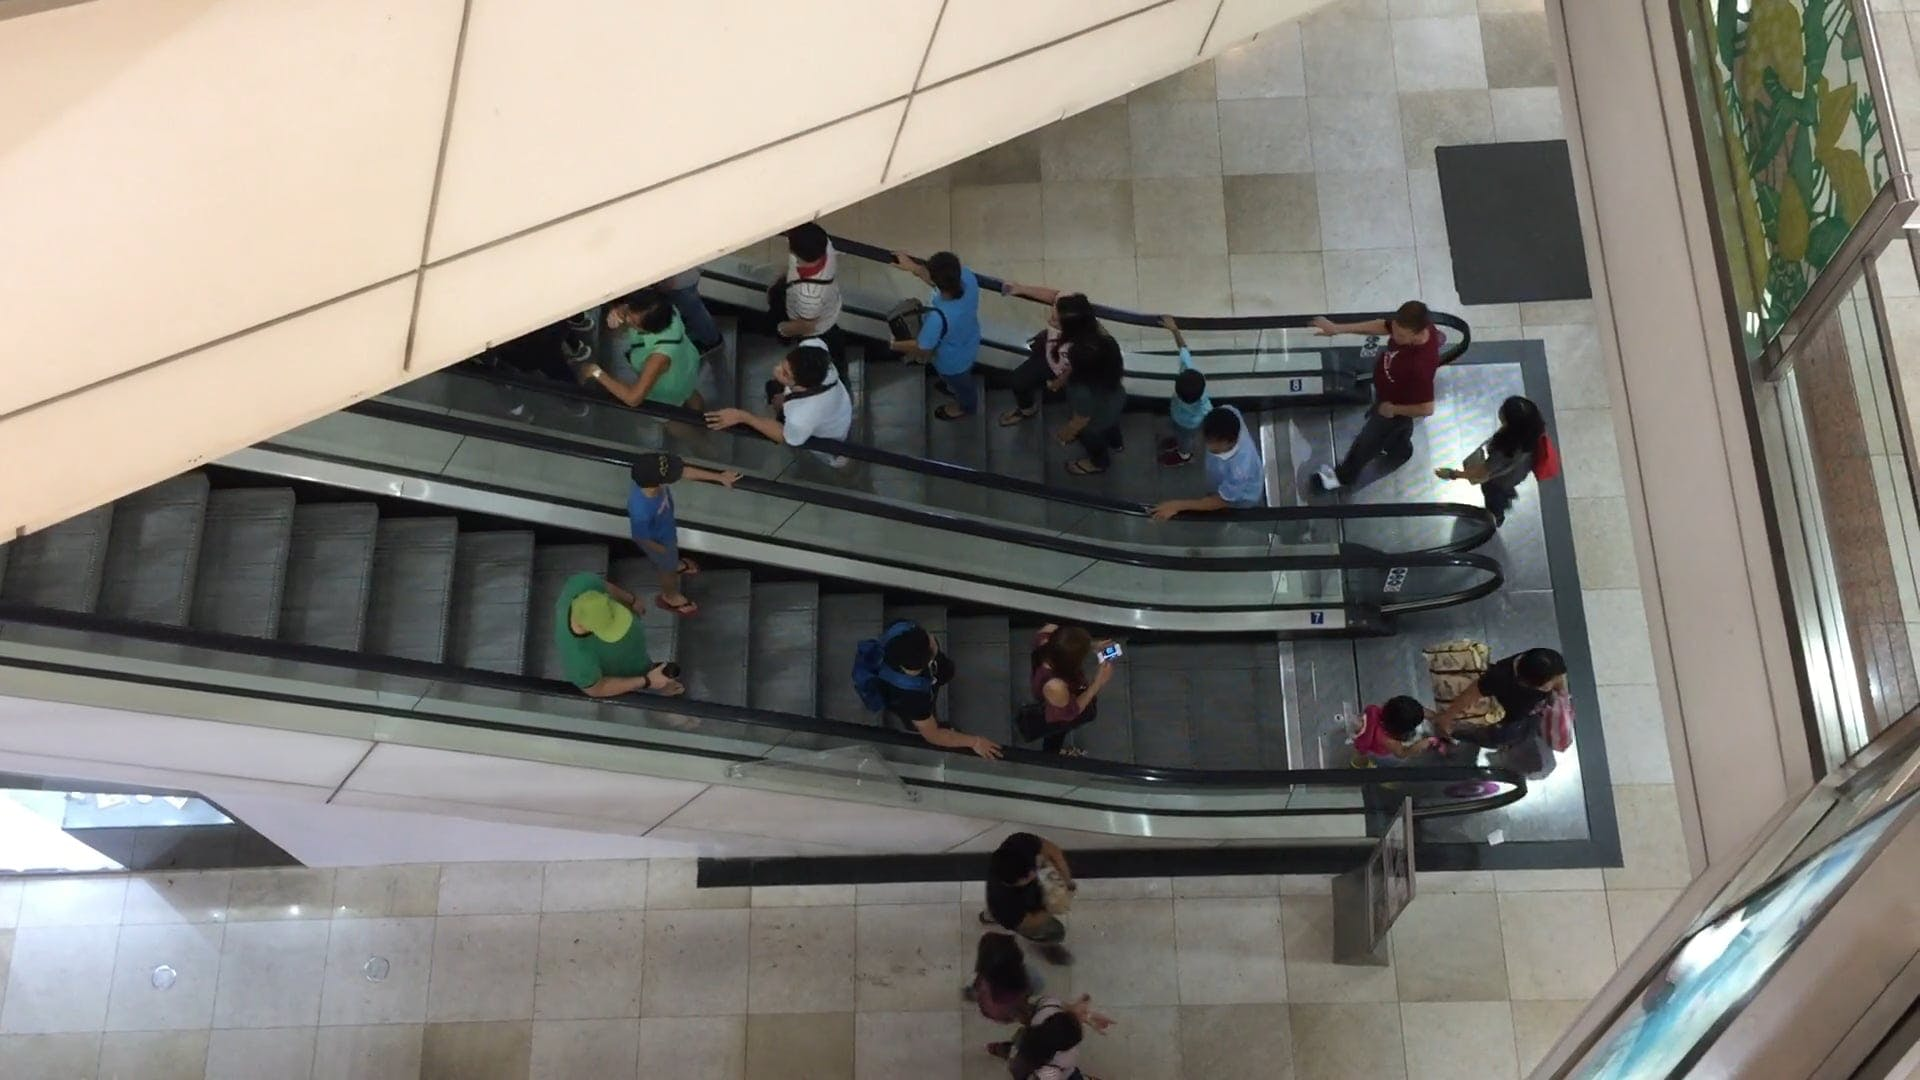 People Using Escalators In The Mall